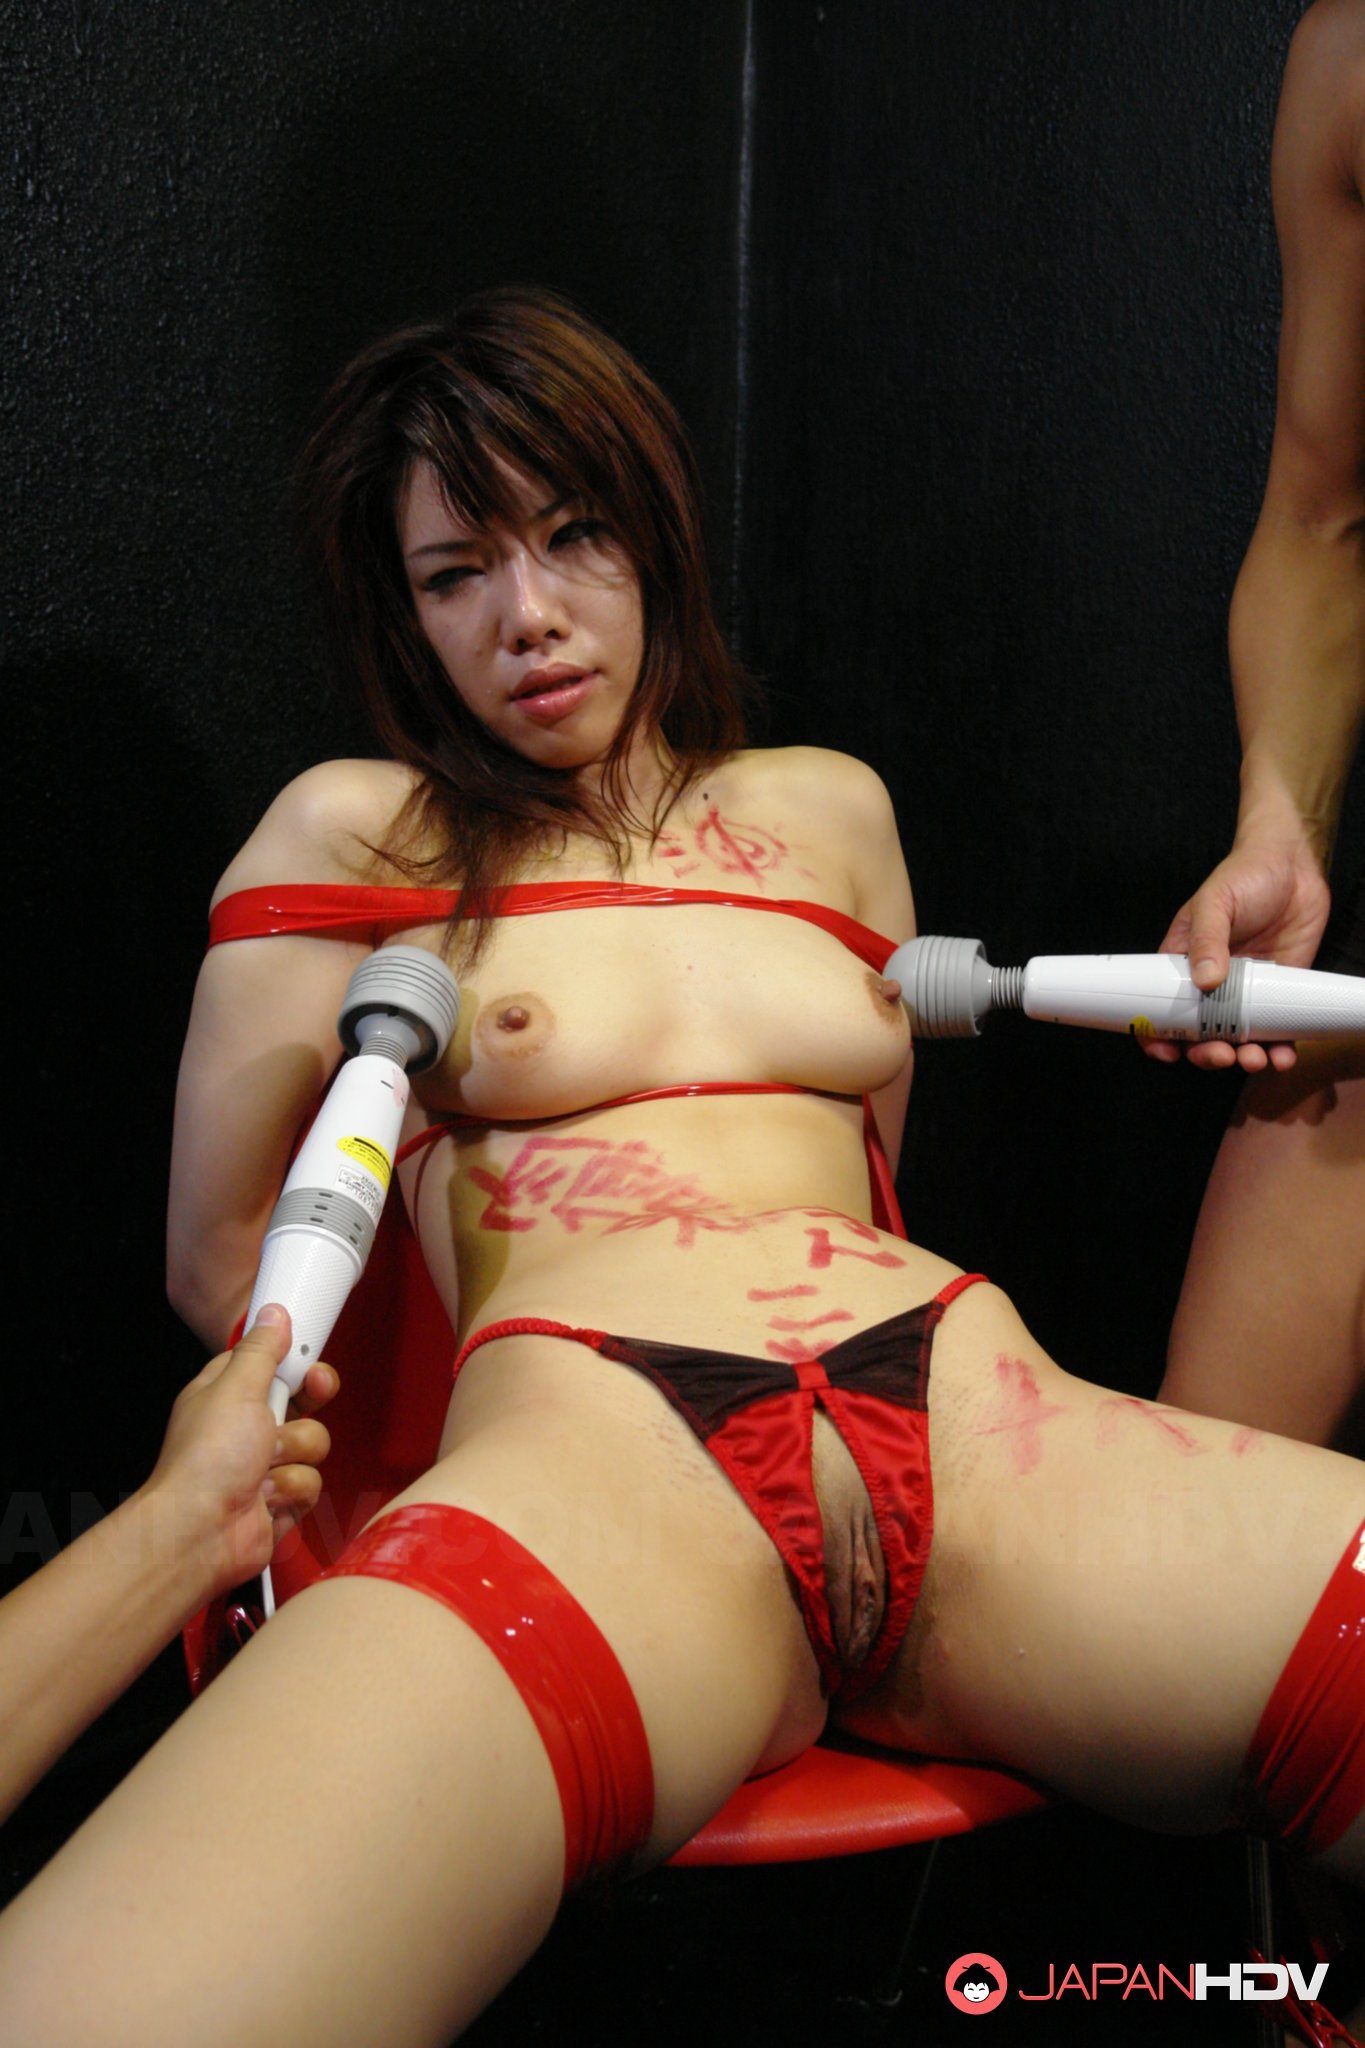 Enormous asian boobs French wife neighbourg